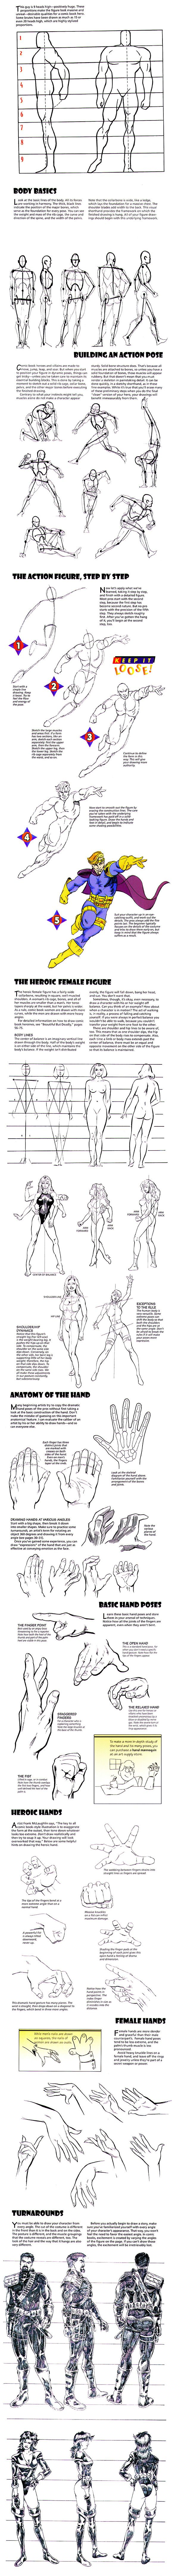 How to Draw the Human Body - Tutorial: Dynamic Heroic Character ...